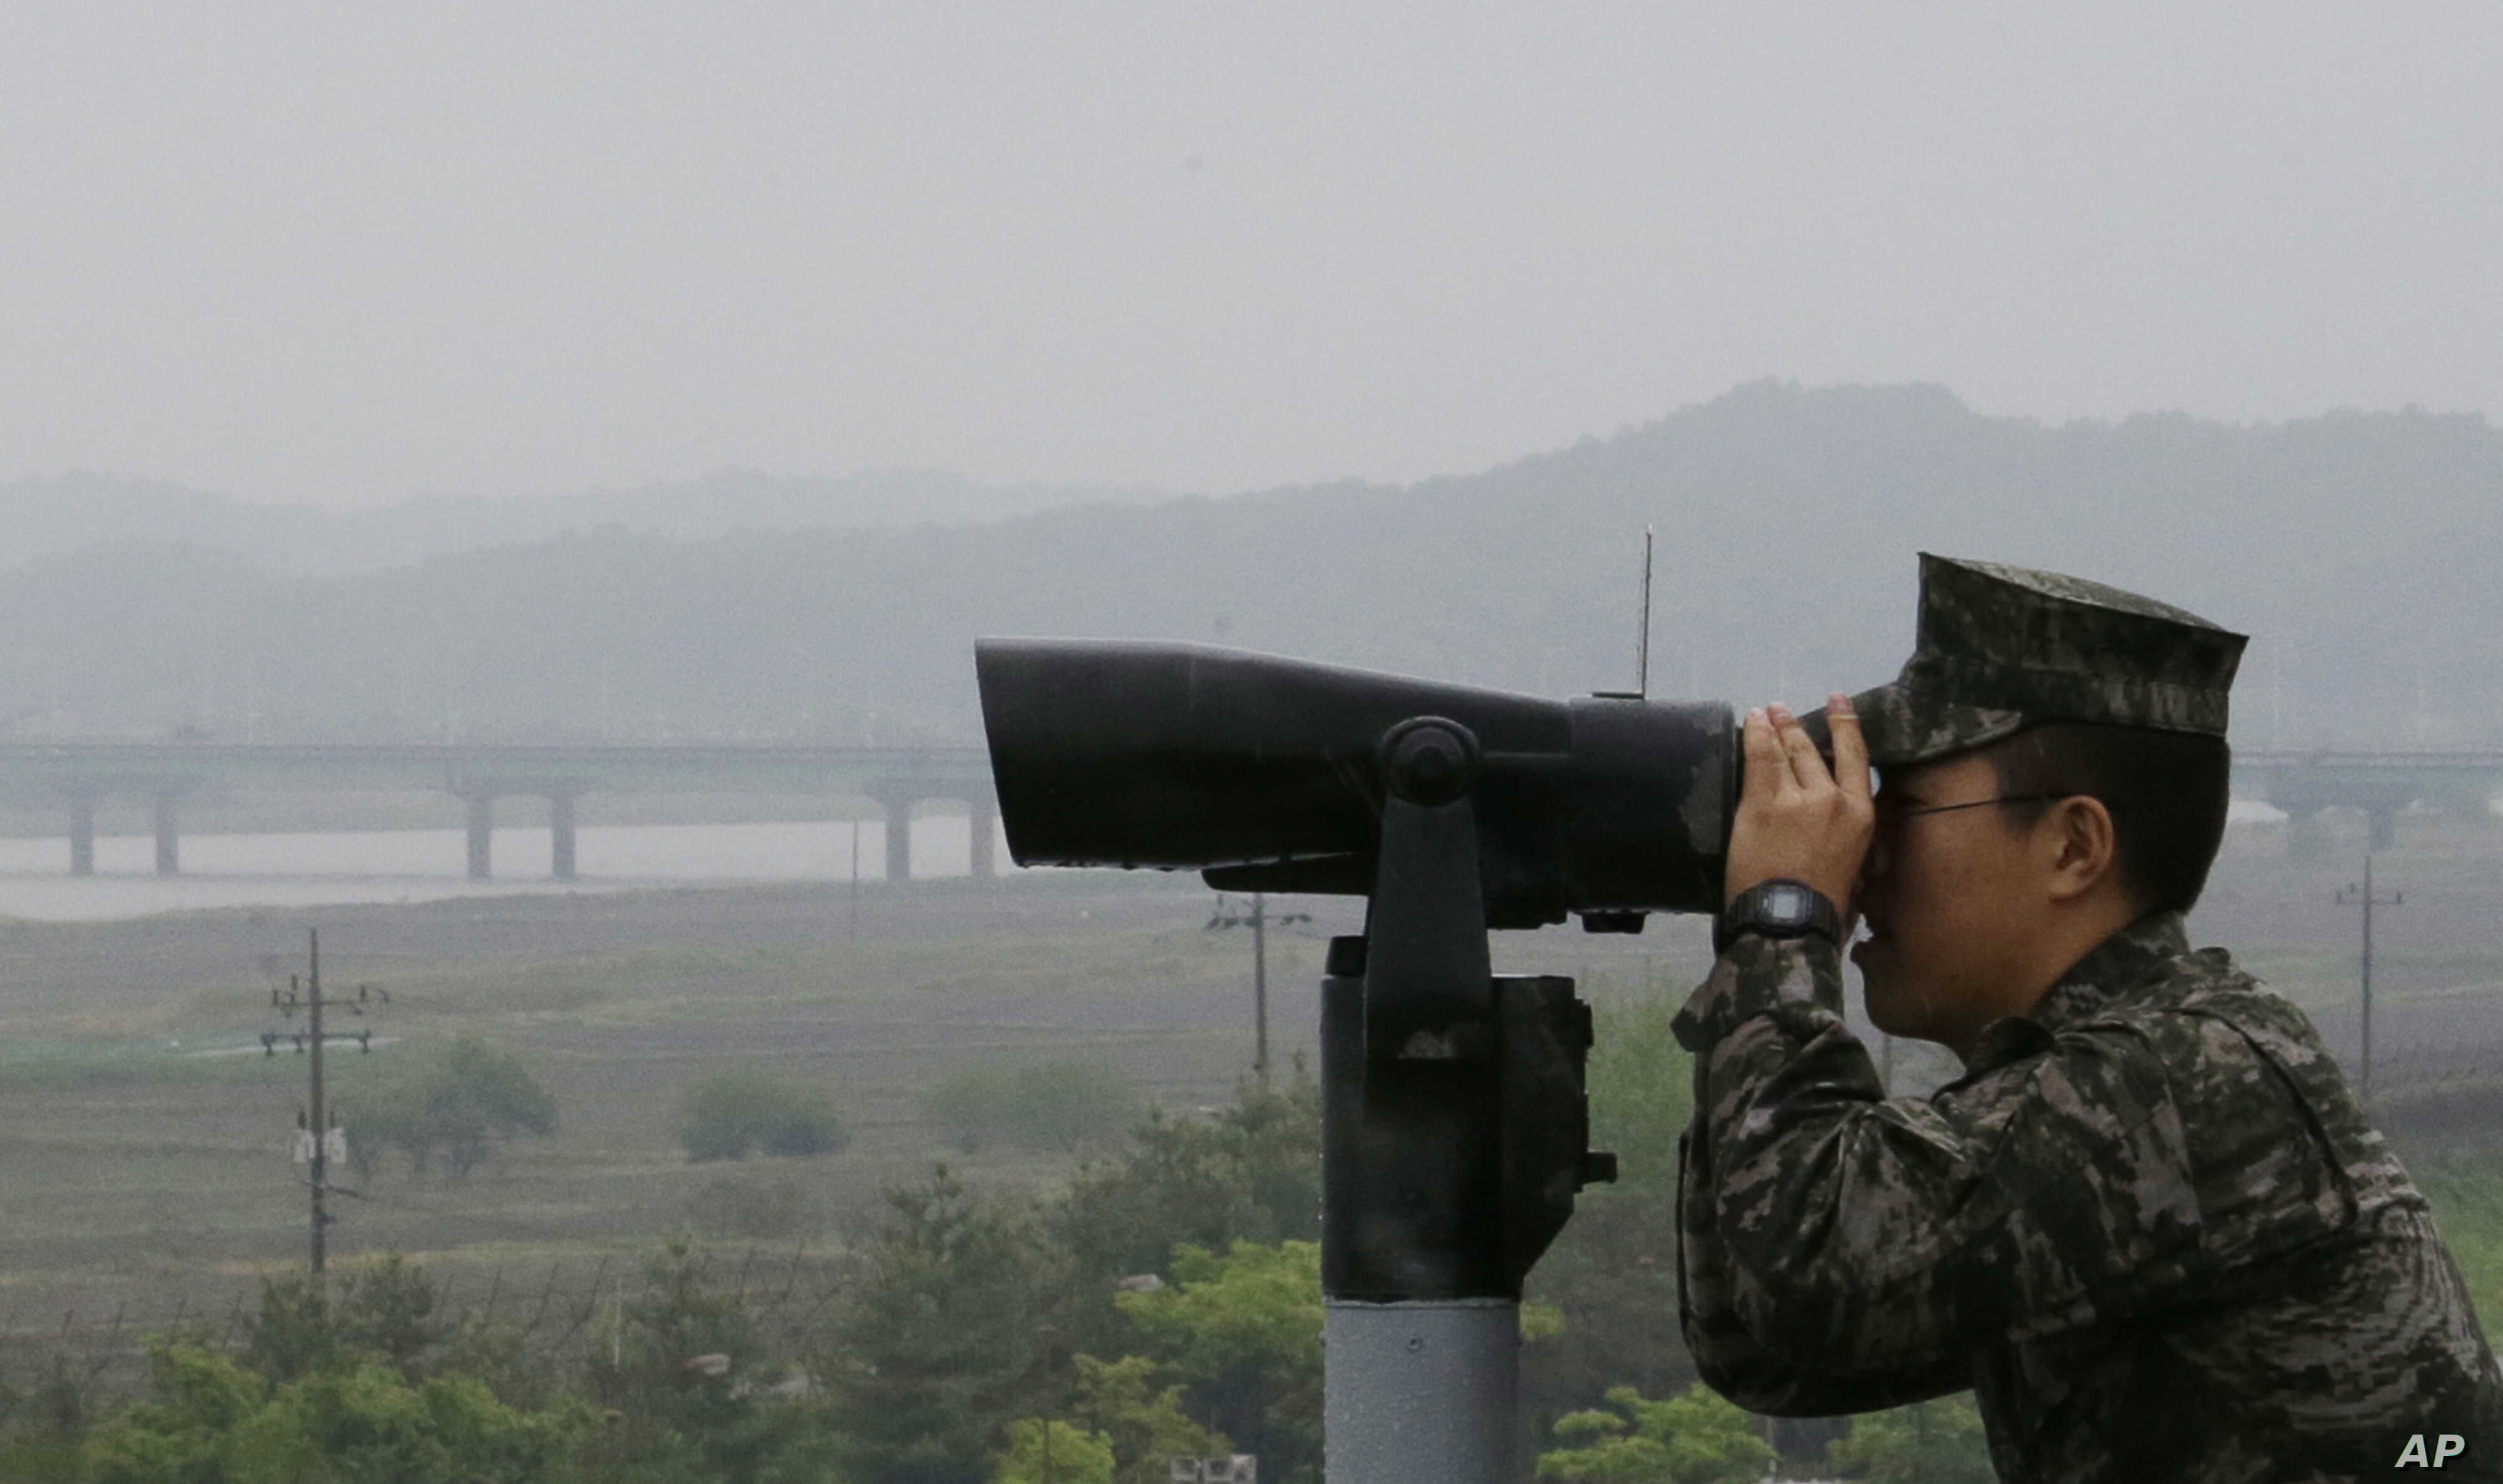 A South Korean marine force member looks toward the North's side at the Imjingak Pavilion in Paju near the border village of Panmunjom, South Korea, May 16, 2018.